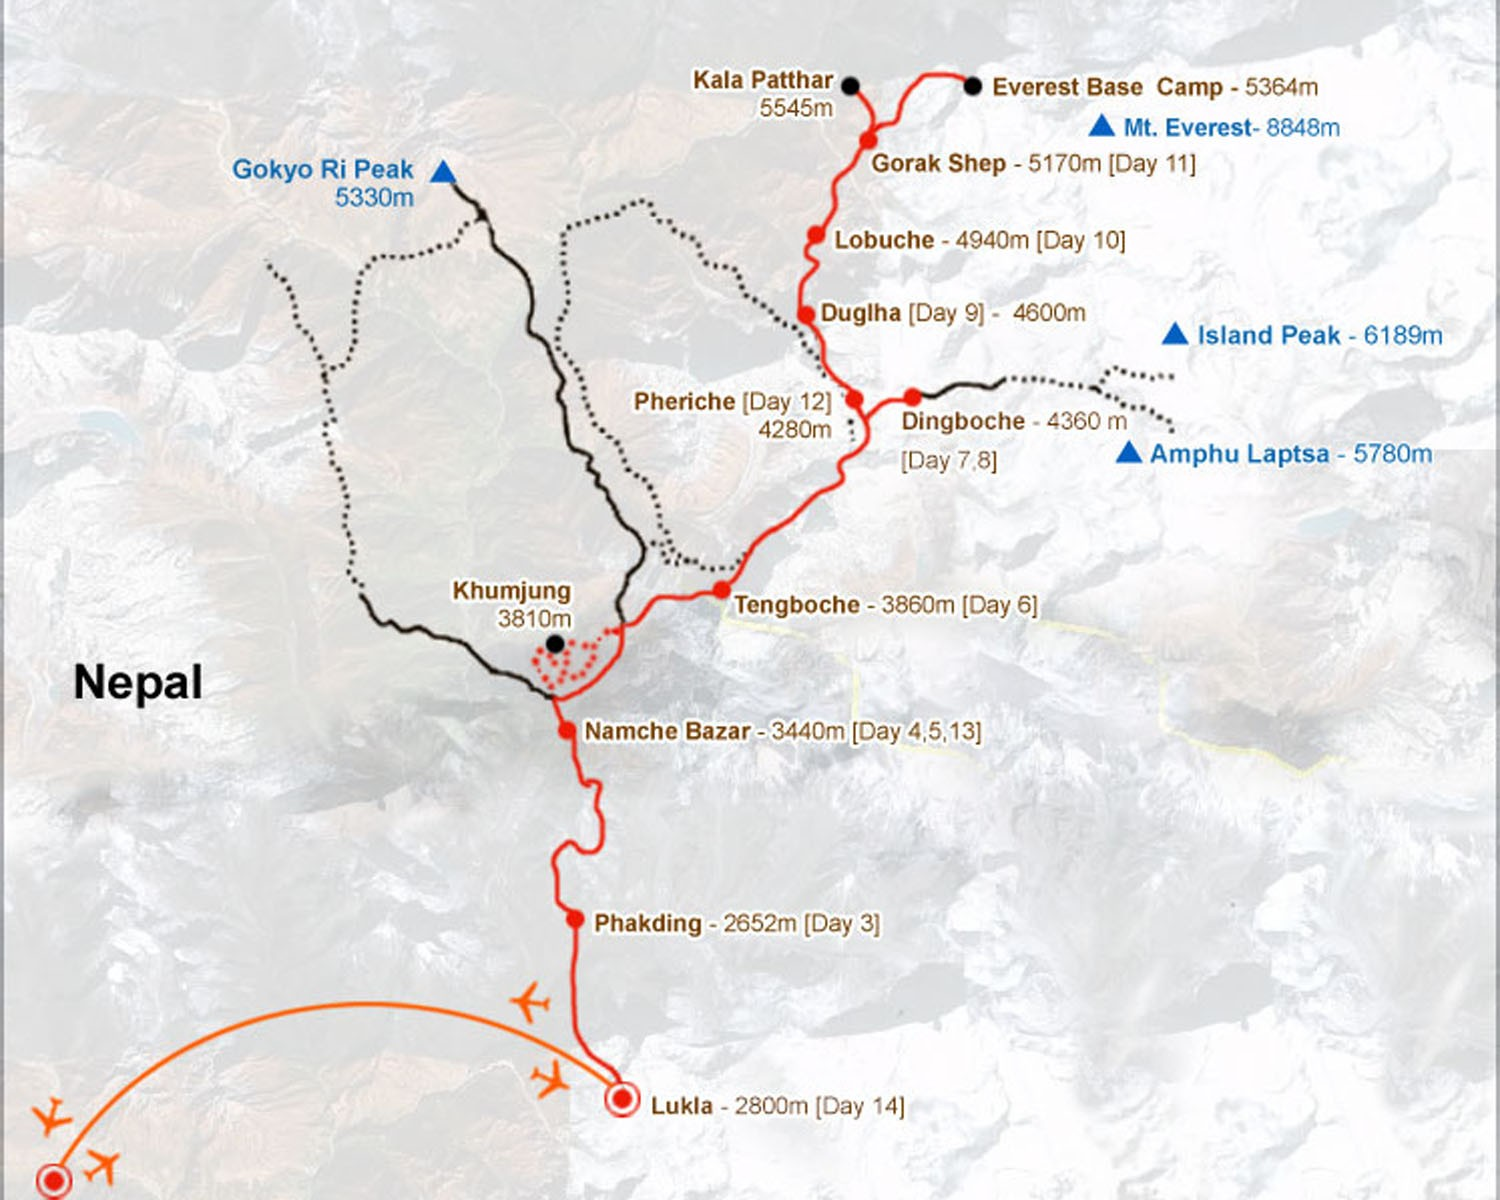 Everest Base Camp, Cho-La Pass & Gokyo Trek Route Map